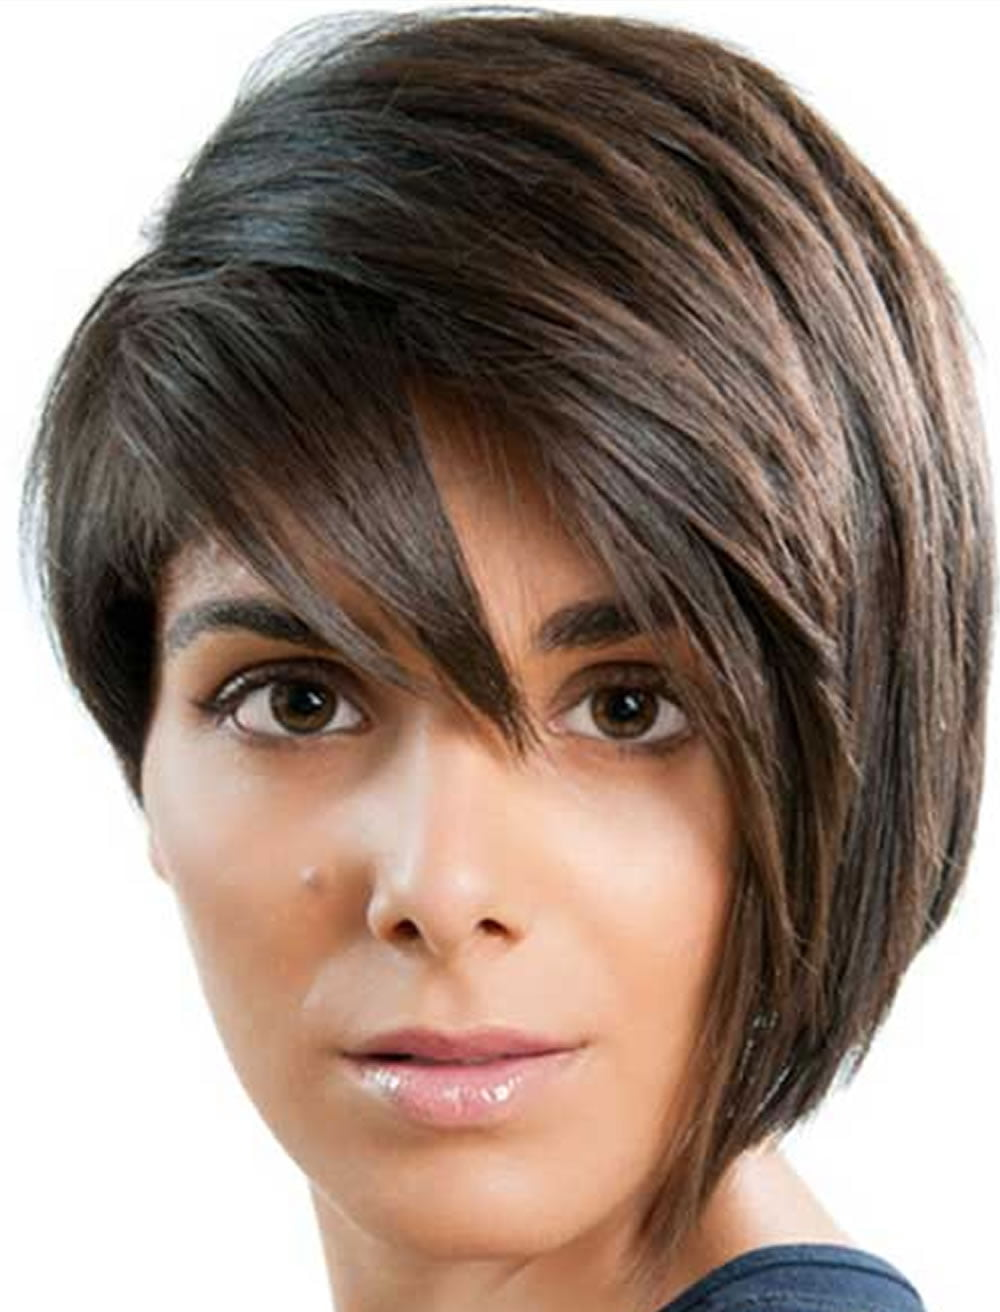 Fabulous Bob Hairstyles Short One Side Long Other Hairstyle Inspiration Daily Dogsangcom